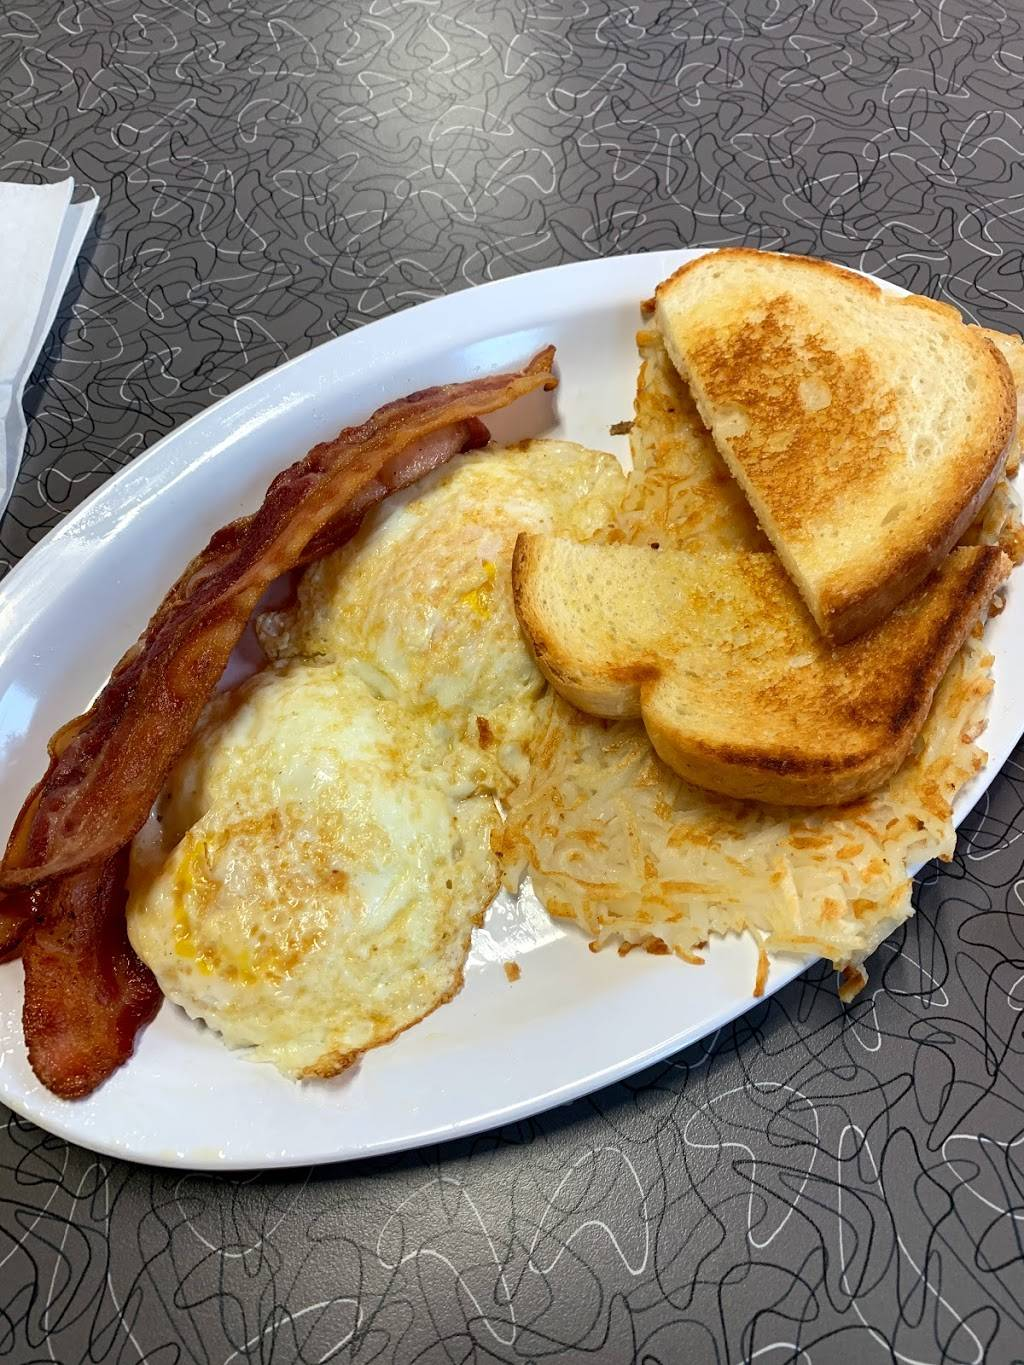 Andy's Diner | restaurant | 1500 W Lake St, Minneapolis, MN 55408, USA | 6122081518 OR +1 612-208-1518